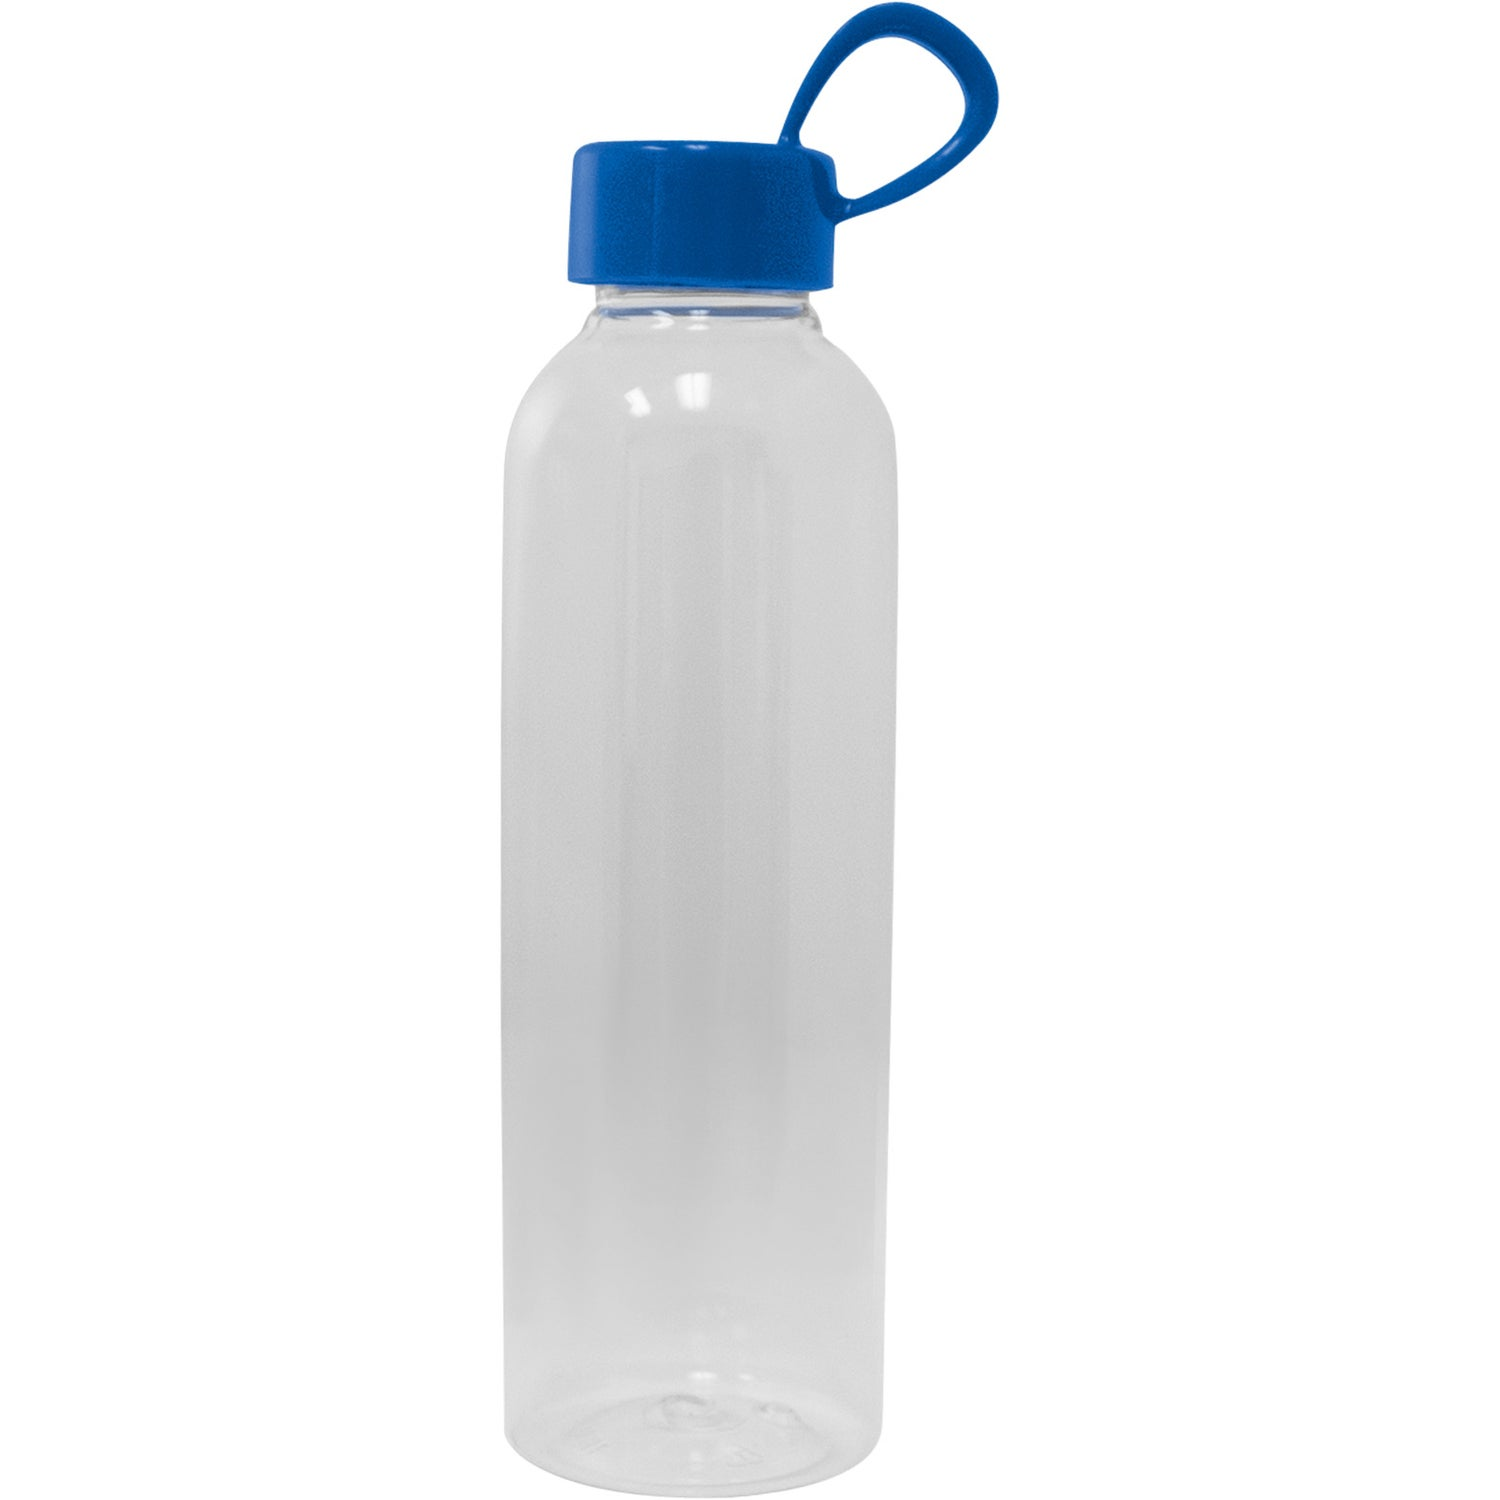 essay on plastic water bottles If you suffer from a water bottle addiction or obsession, you are not alone  22  letterpile» personal essays  after all, those bottles of water often taste like  plastic since they've been sitting for so long and they probably just.